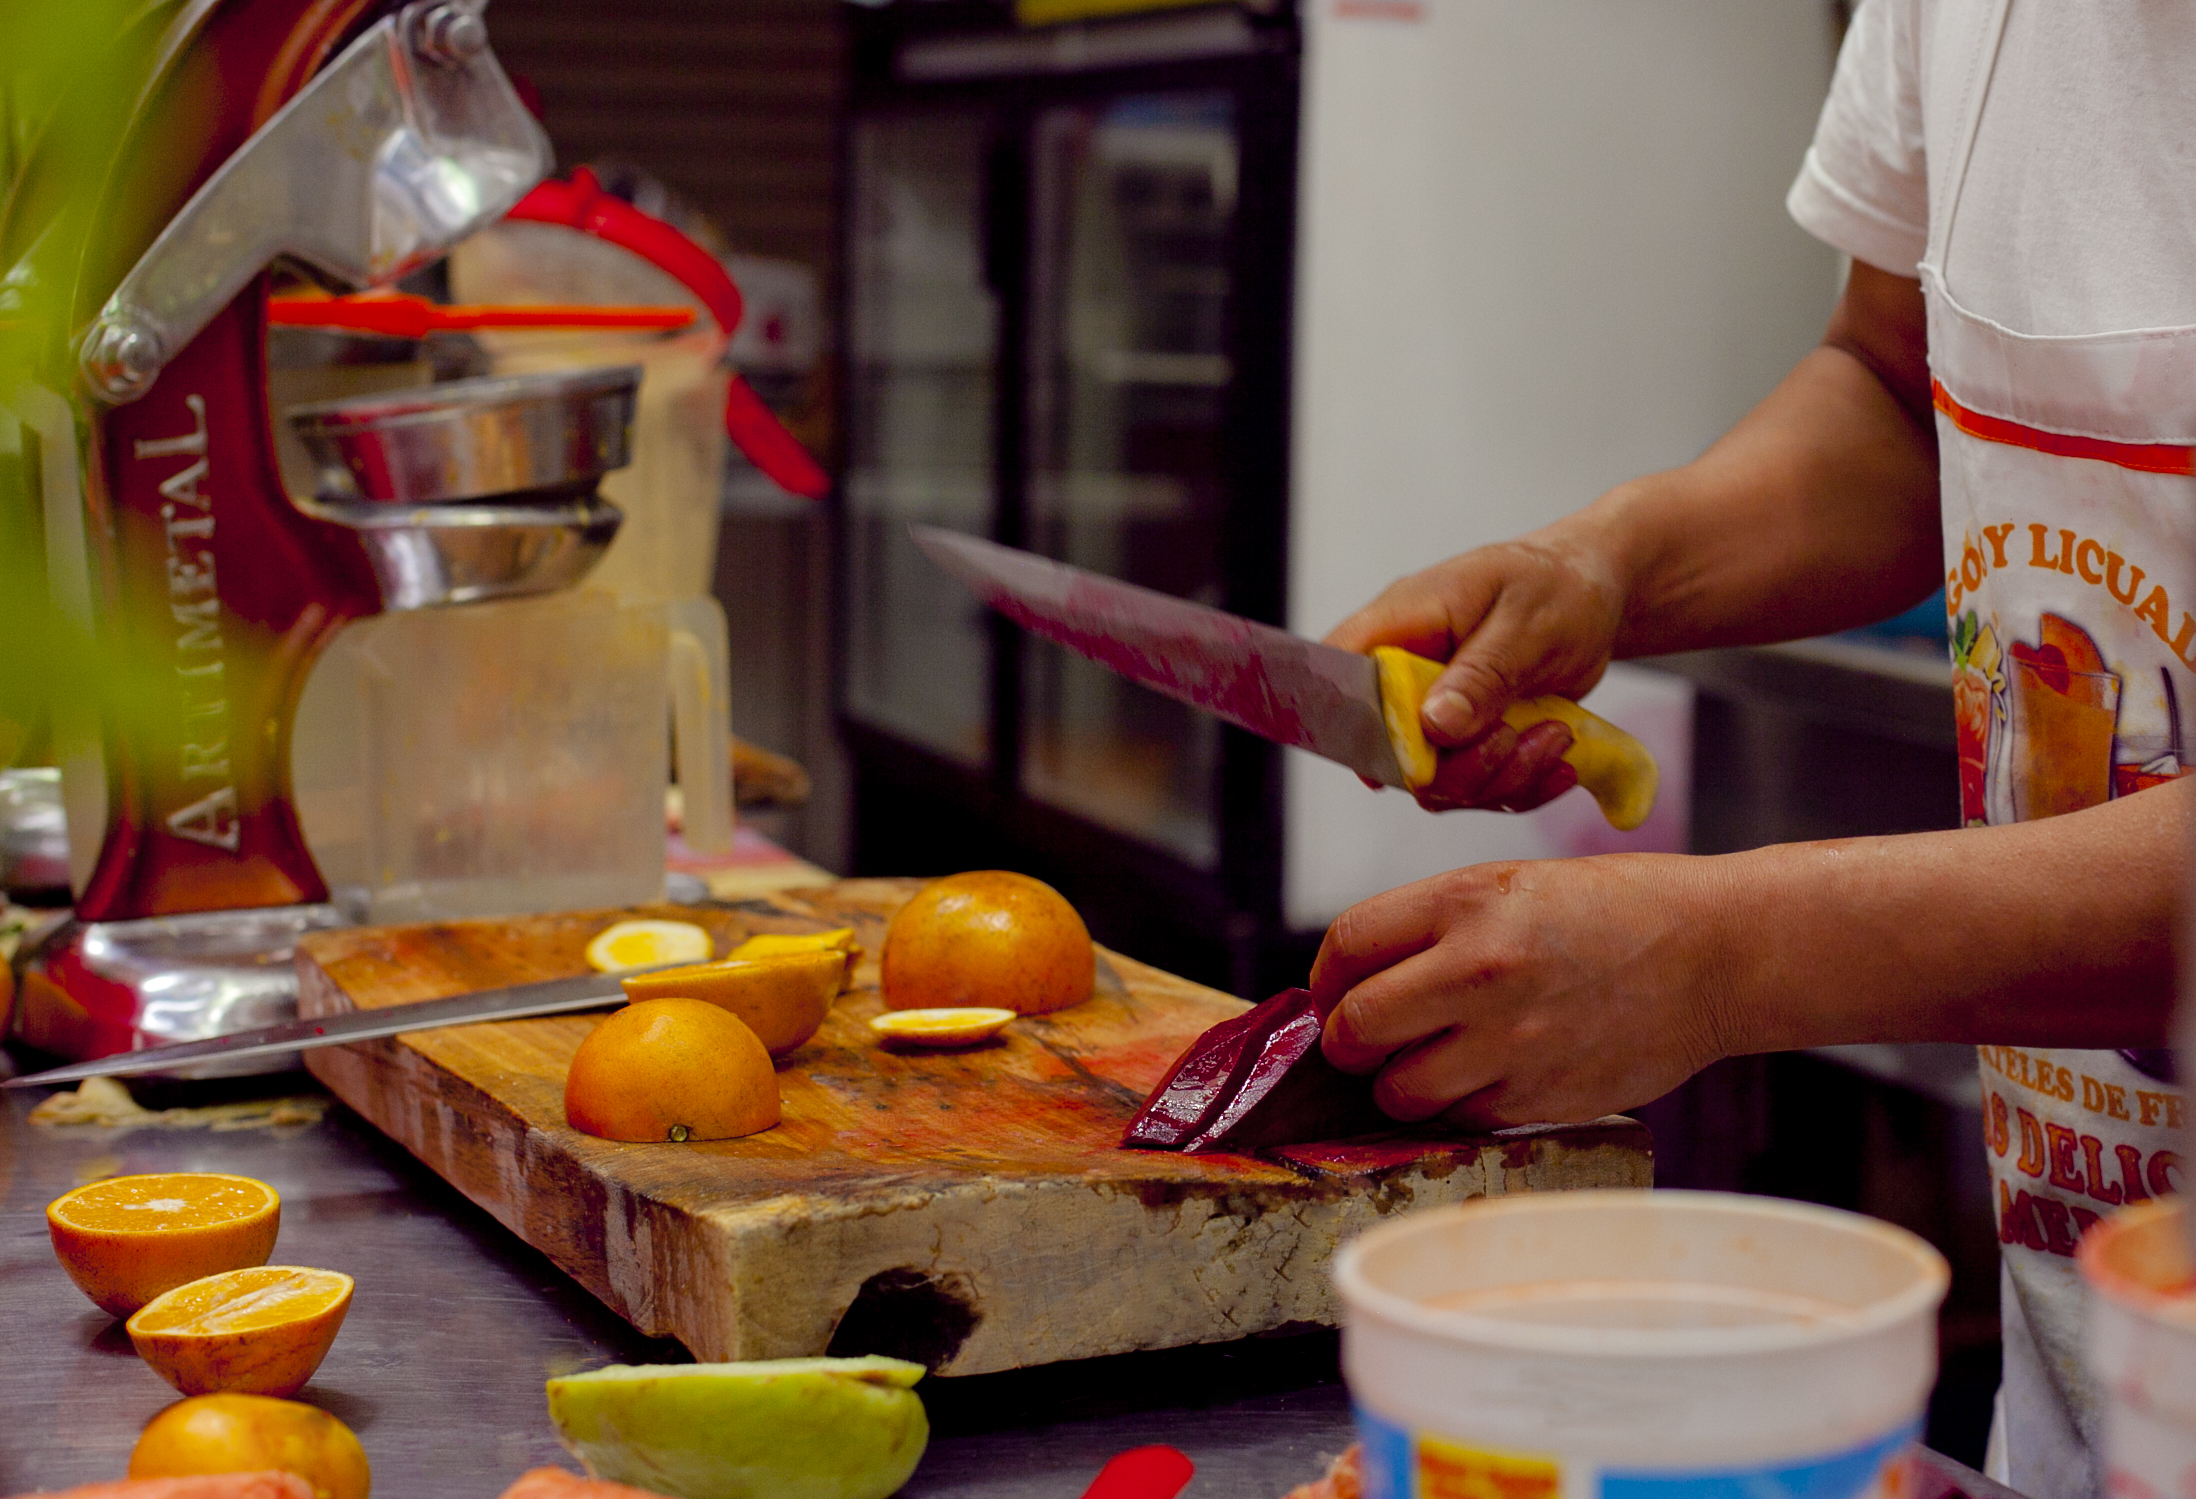 Copy of Chopping fruit at a market in Mexico City